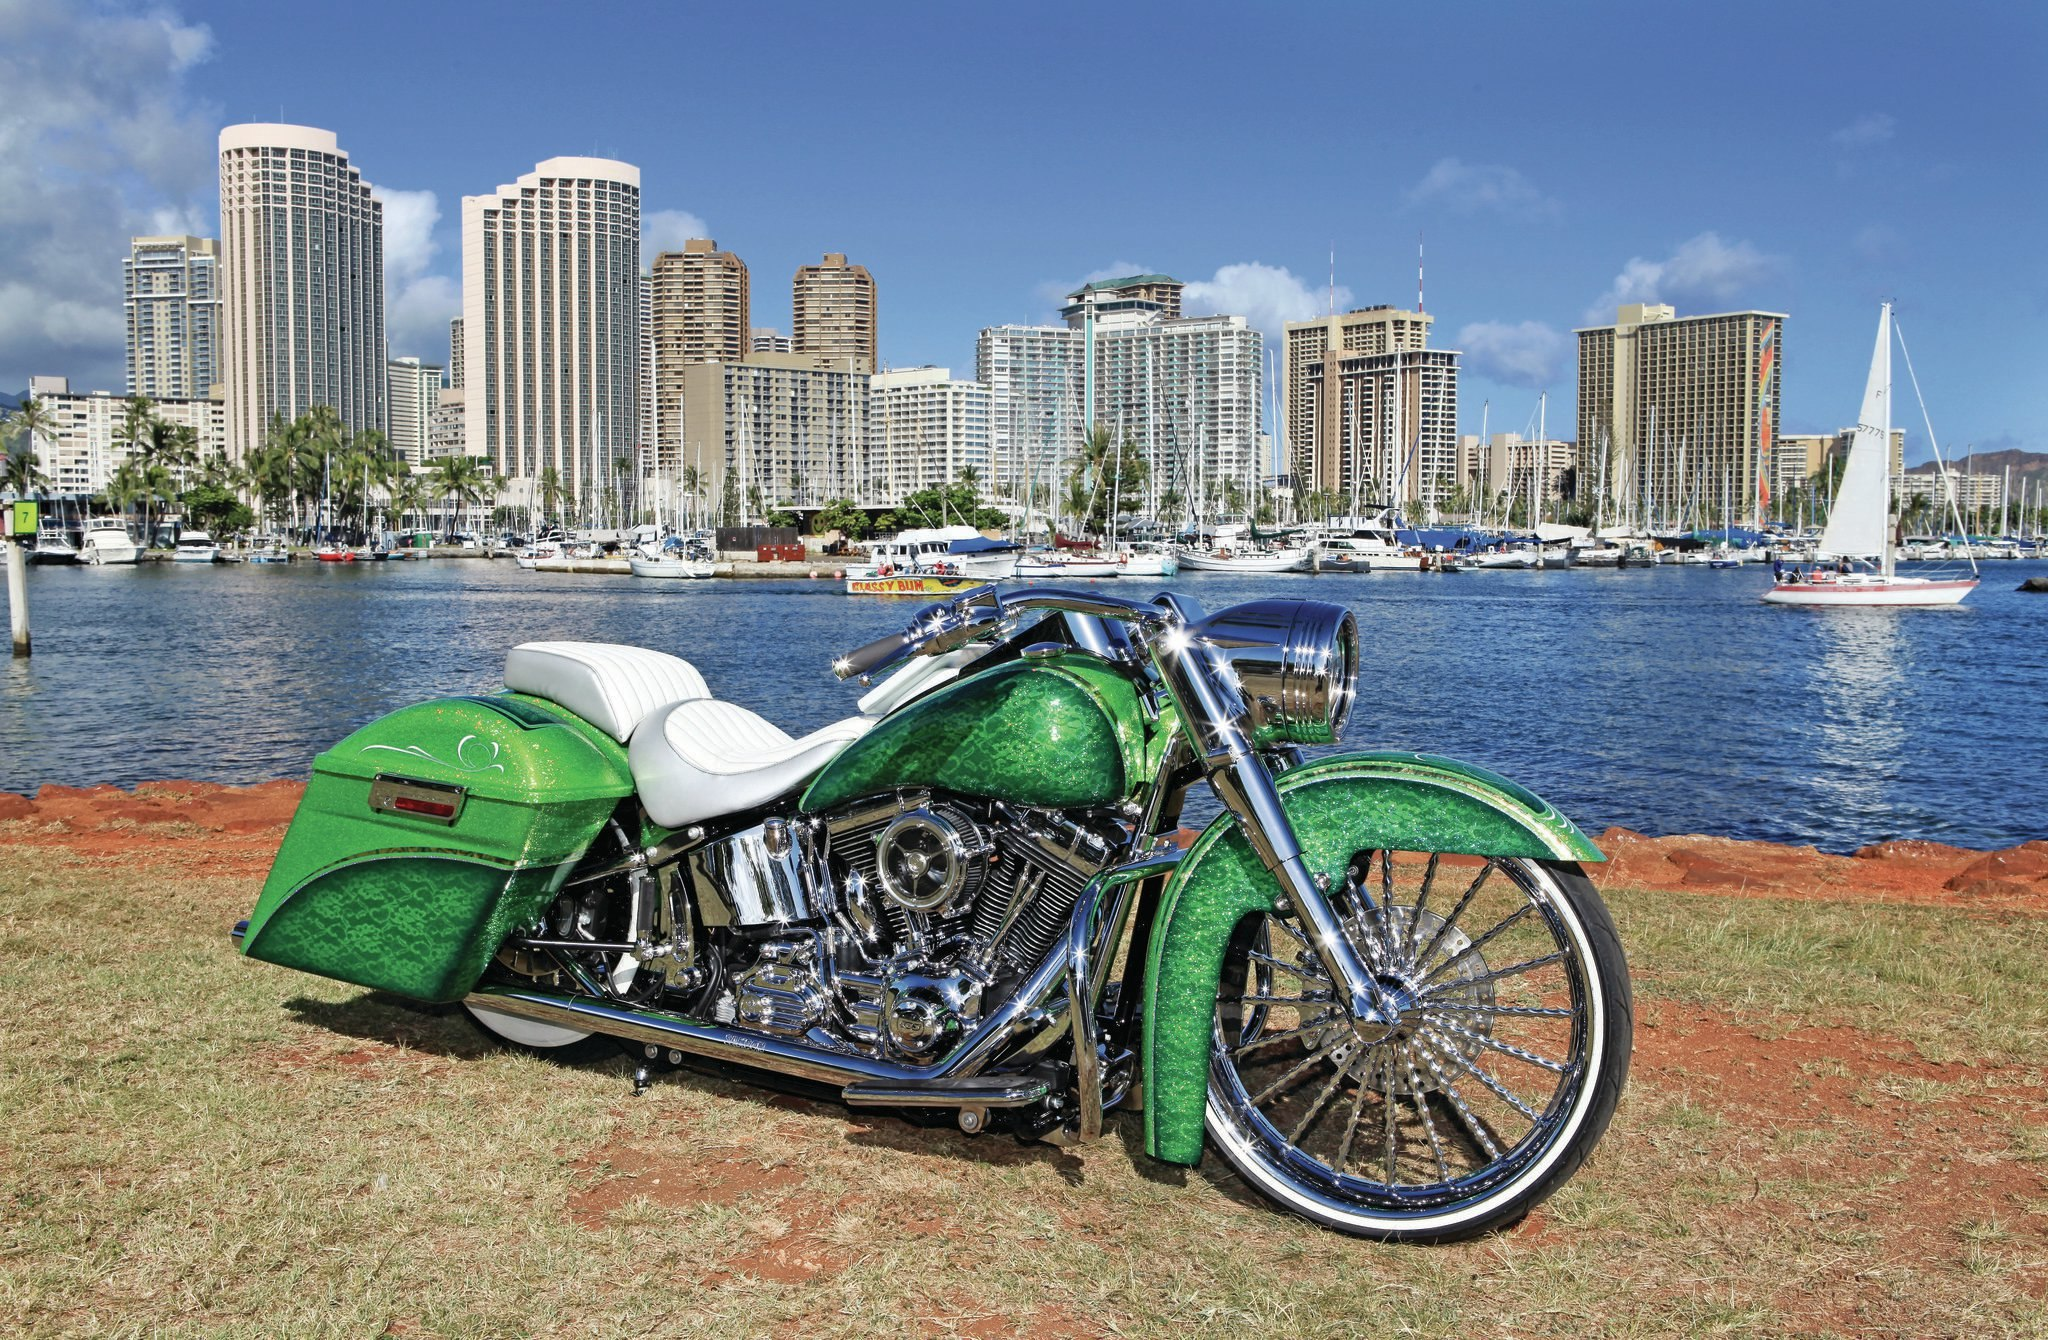 Harley-davidson custom photo - 7